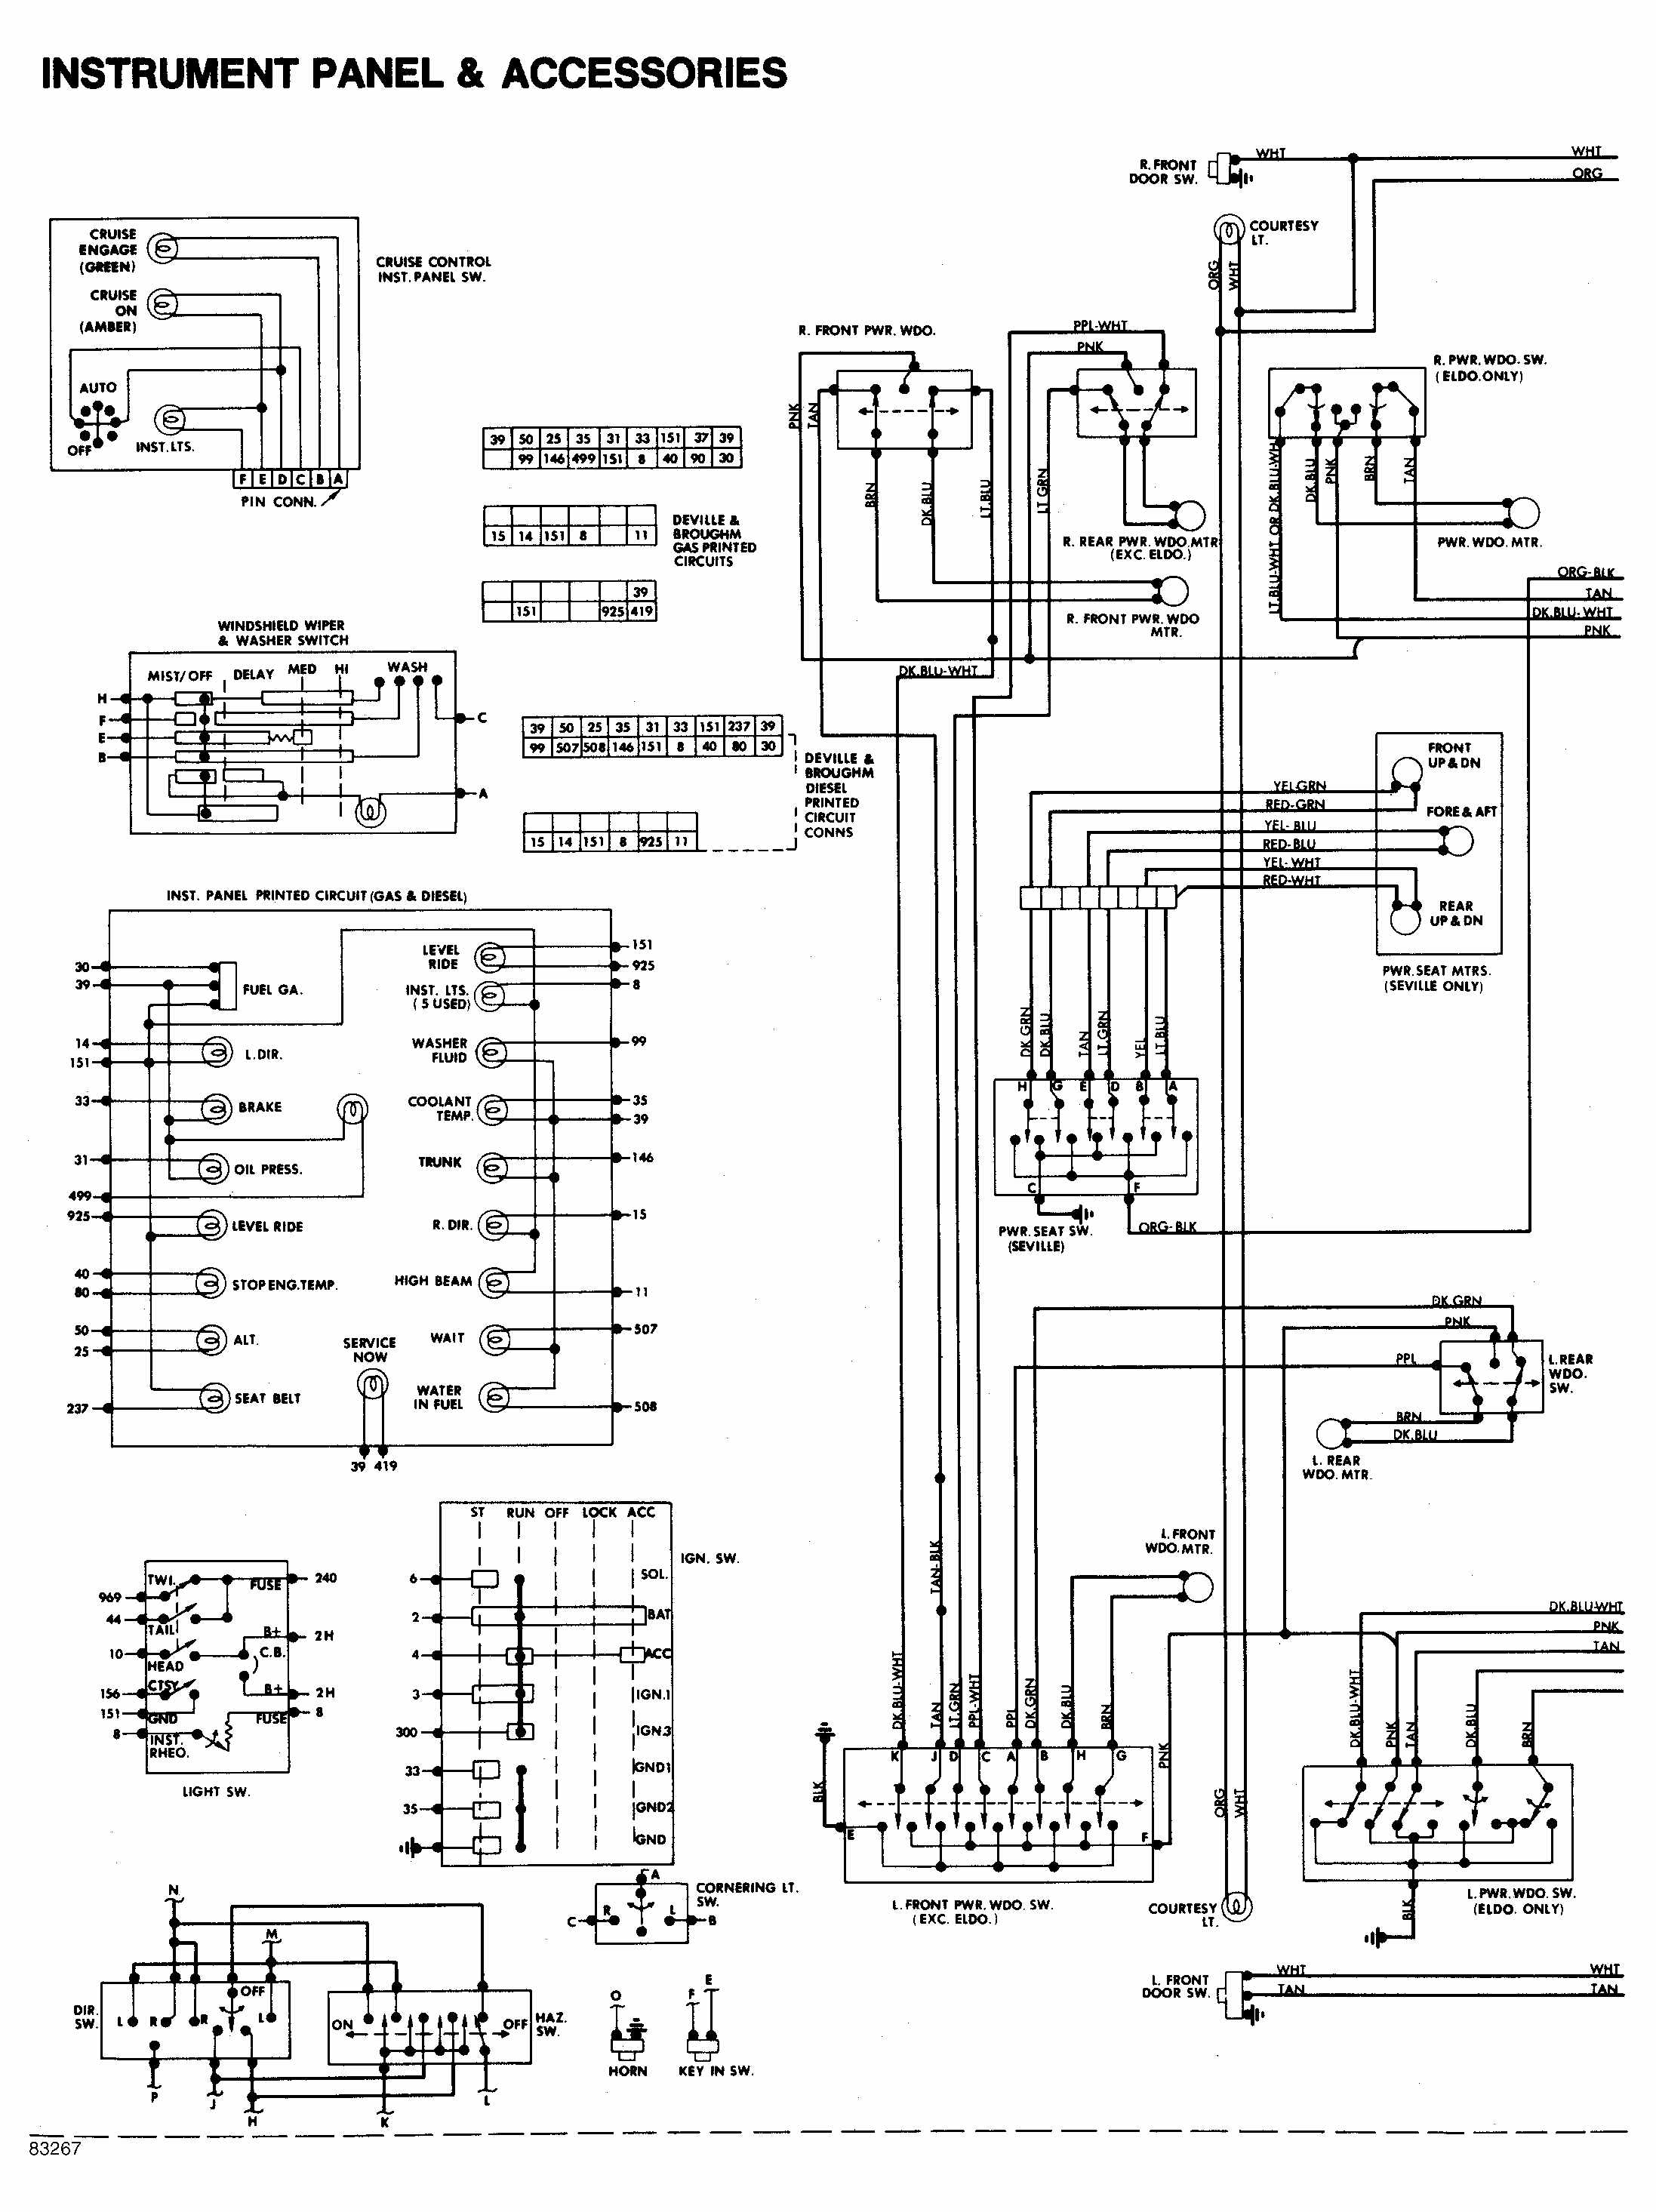 2004 dodge diesel fuel pump wiring diagram